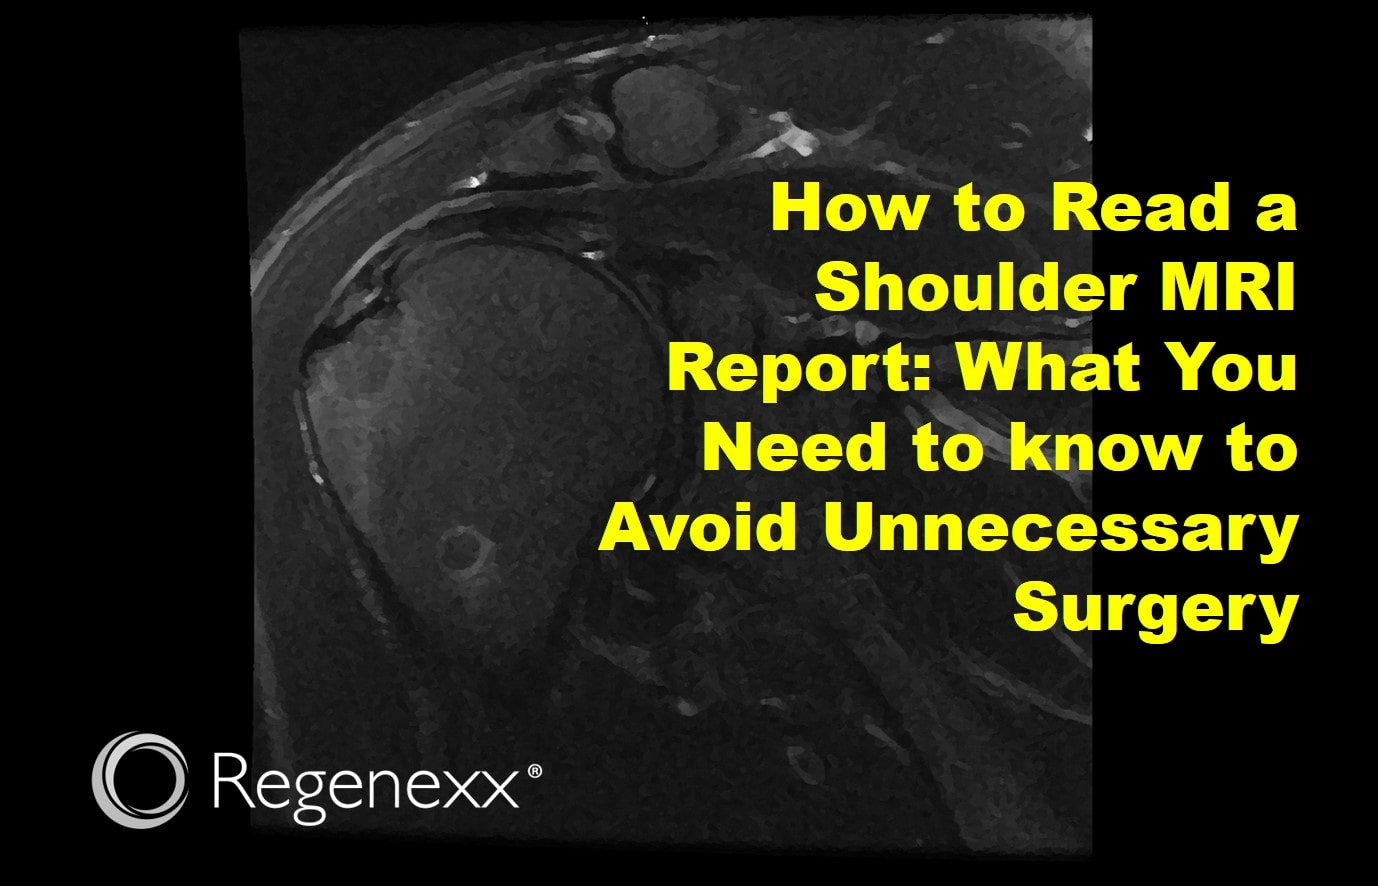 How to Read a Shoulder MRI Report - Regenexx®